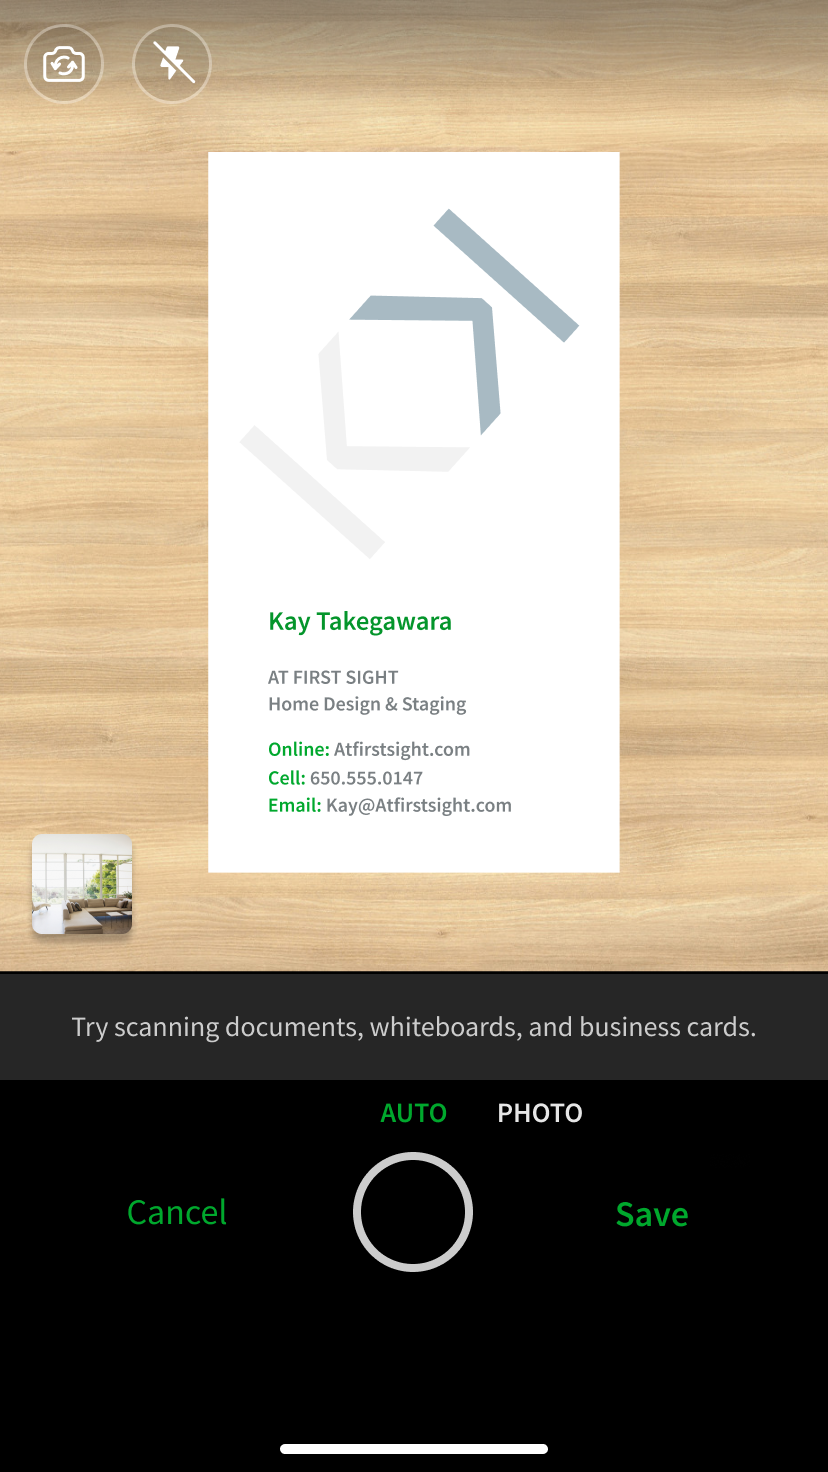 Phone with scanned business card